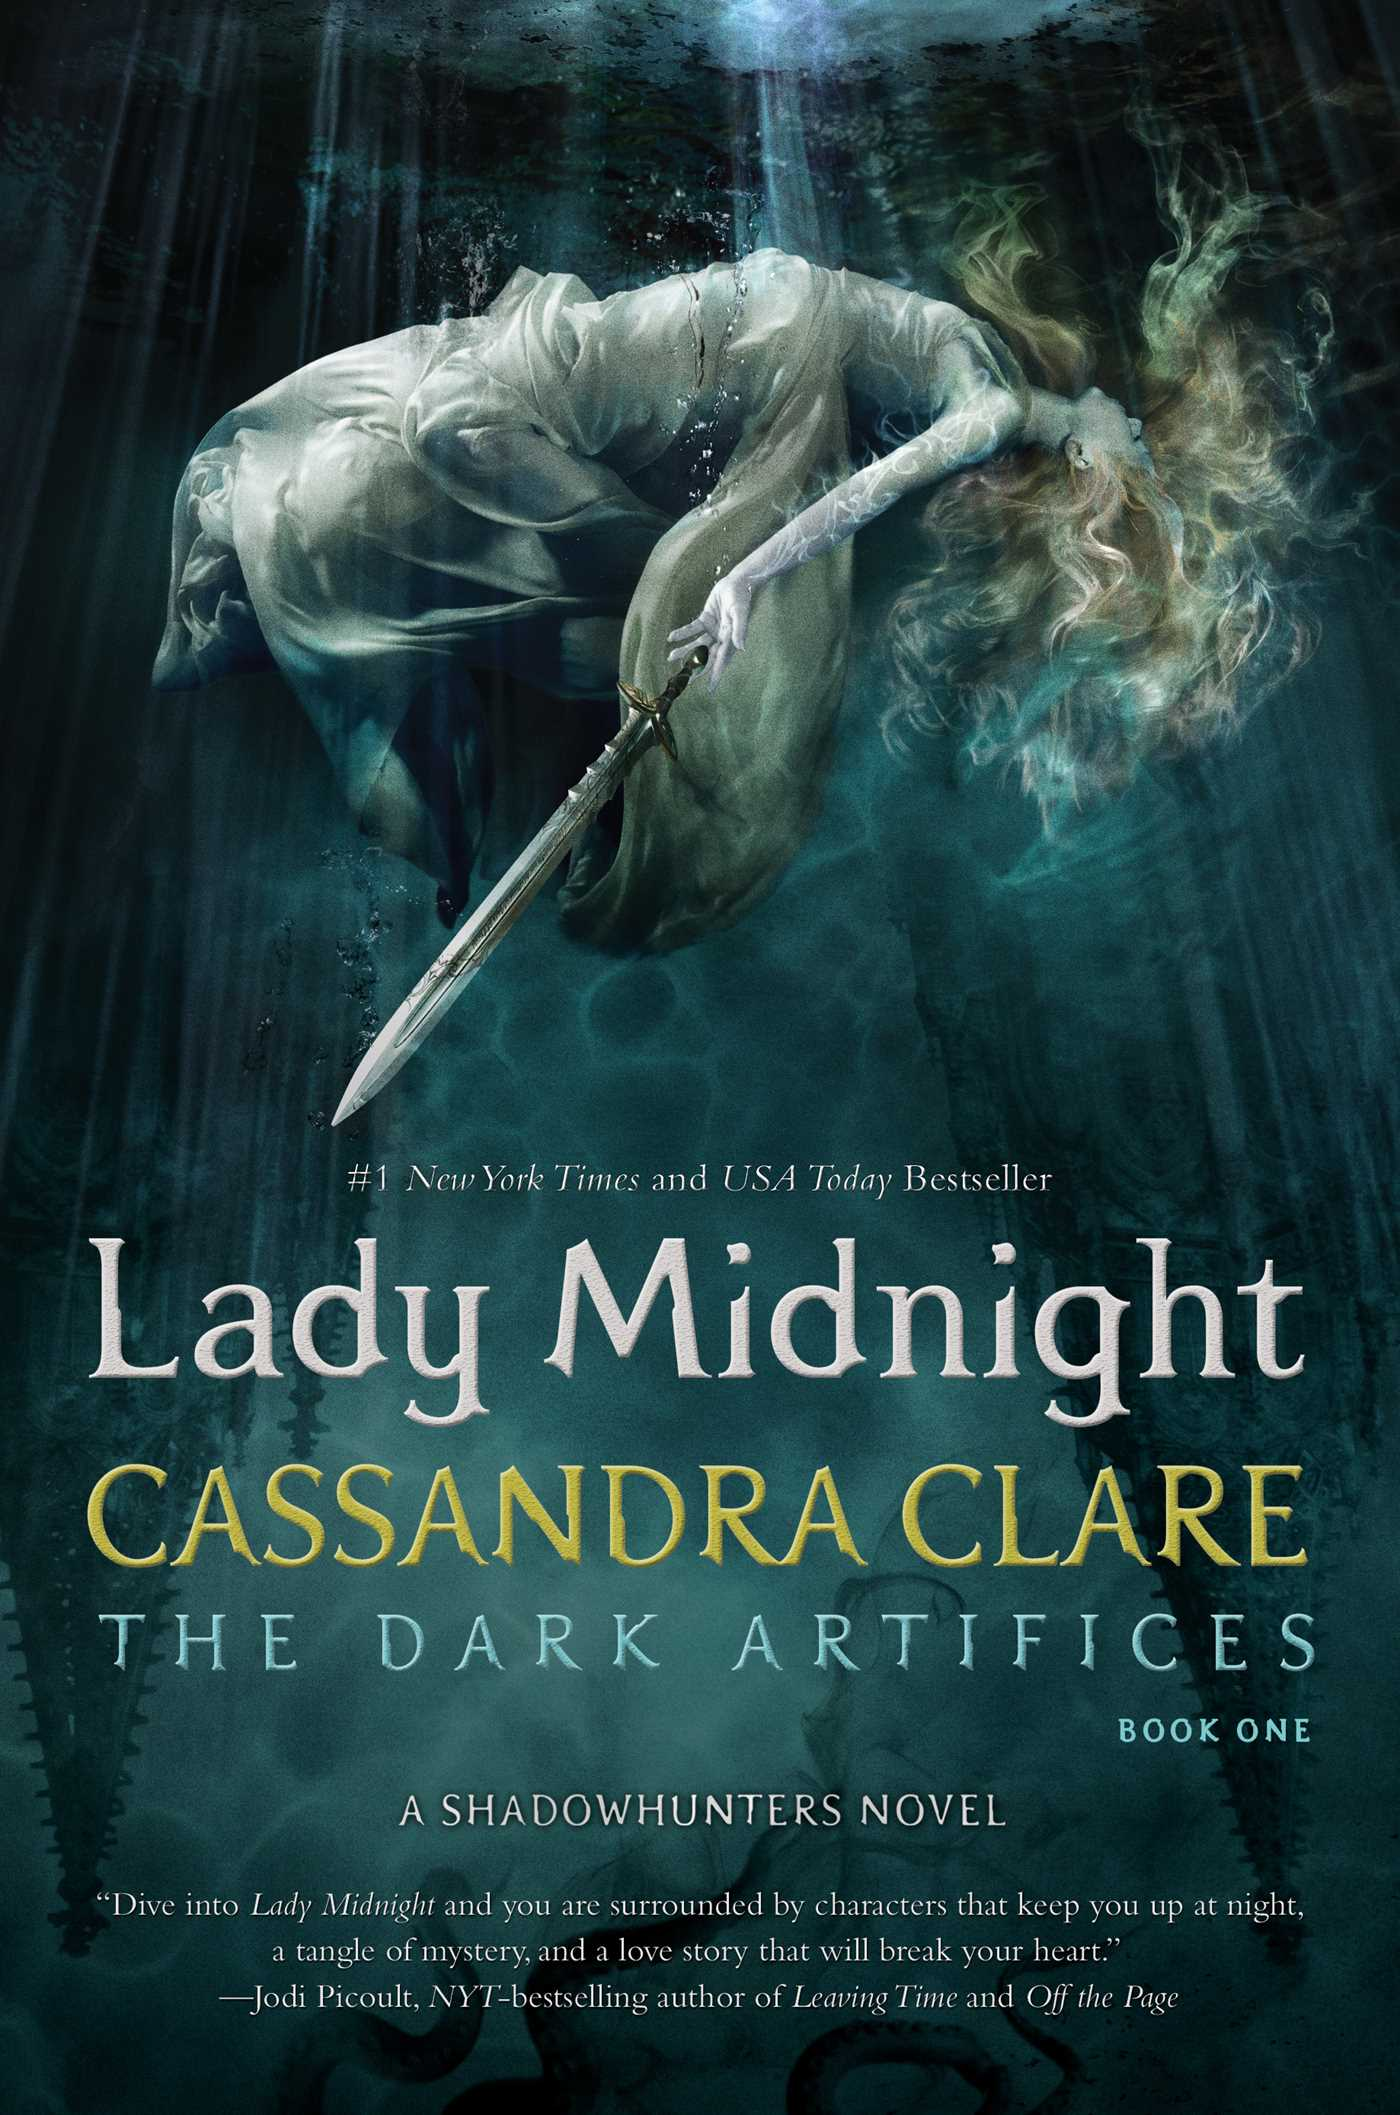 Lady midnight 9781442468351 hr